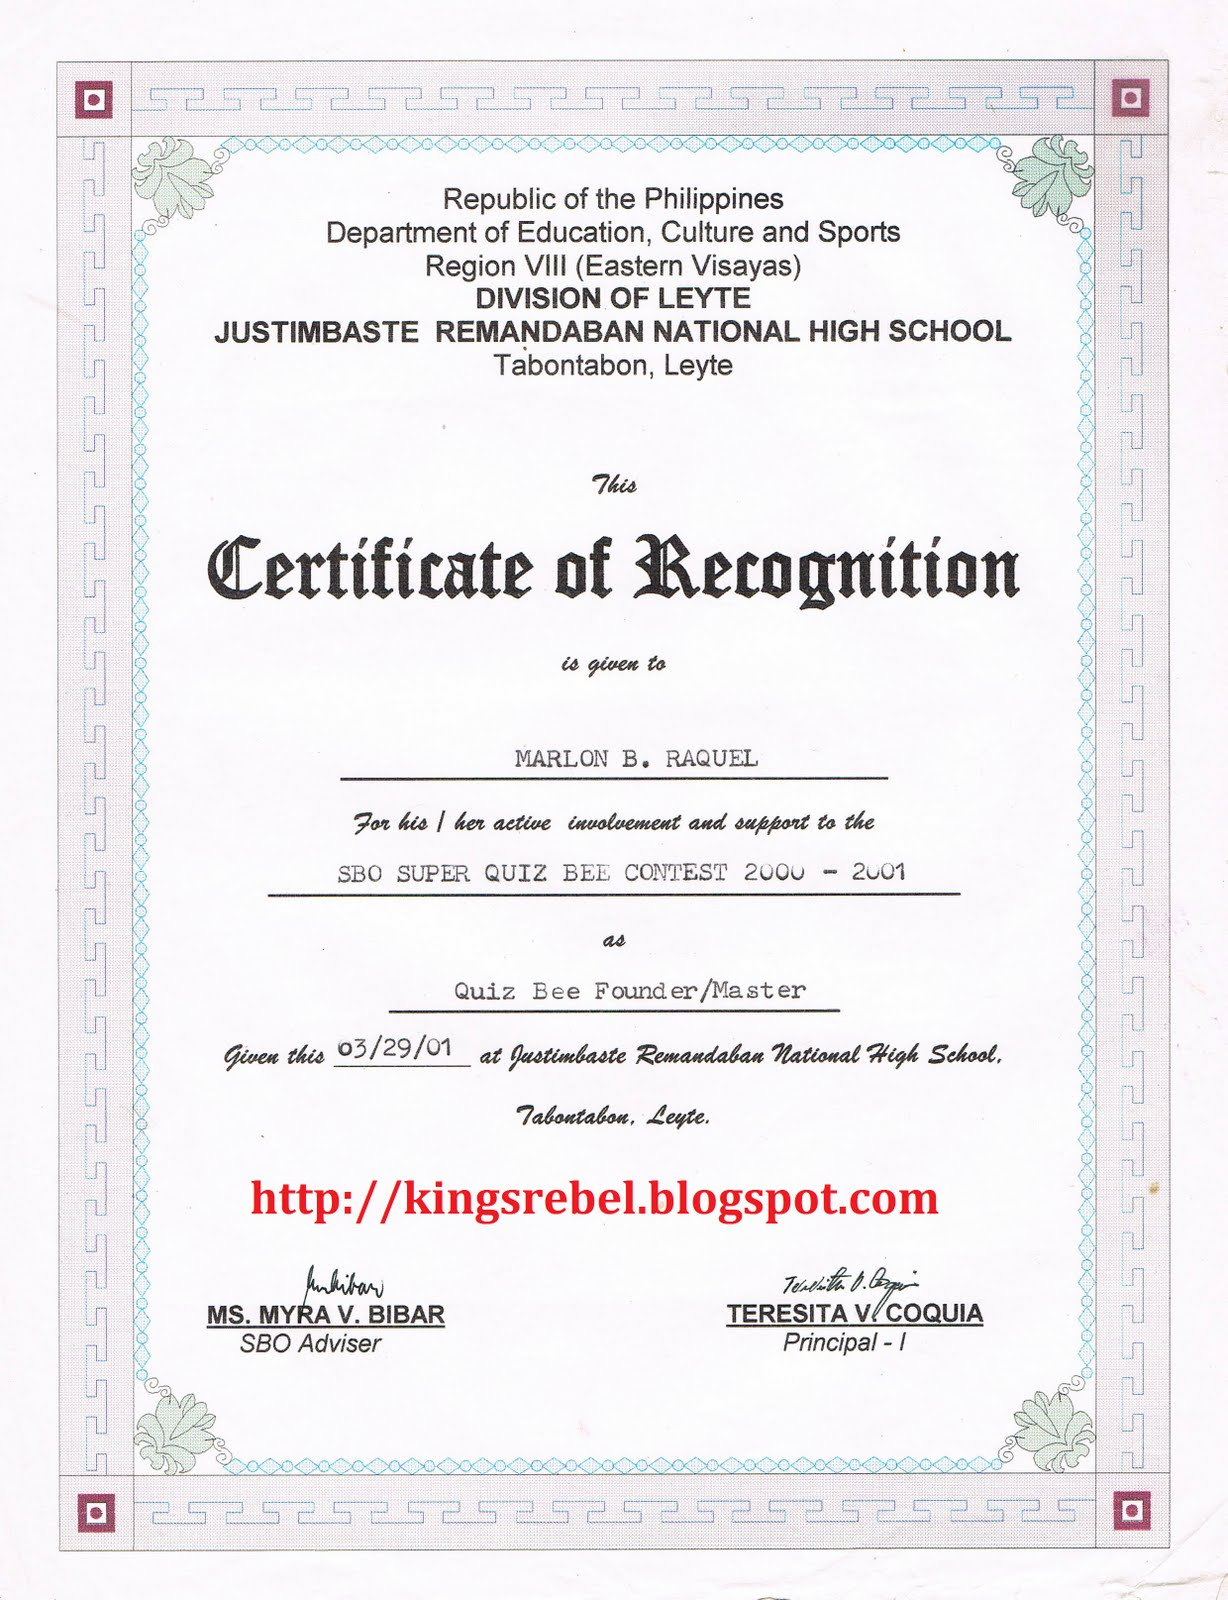 Sample certificate of recognition for quiz bee images sample certificate of recognition for quiz bee images certificate design and template yelopaper Gallery